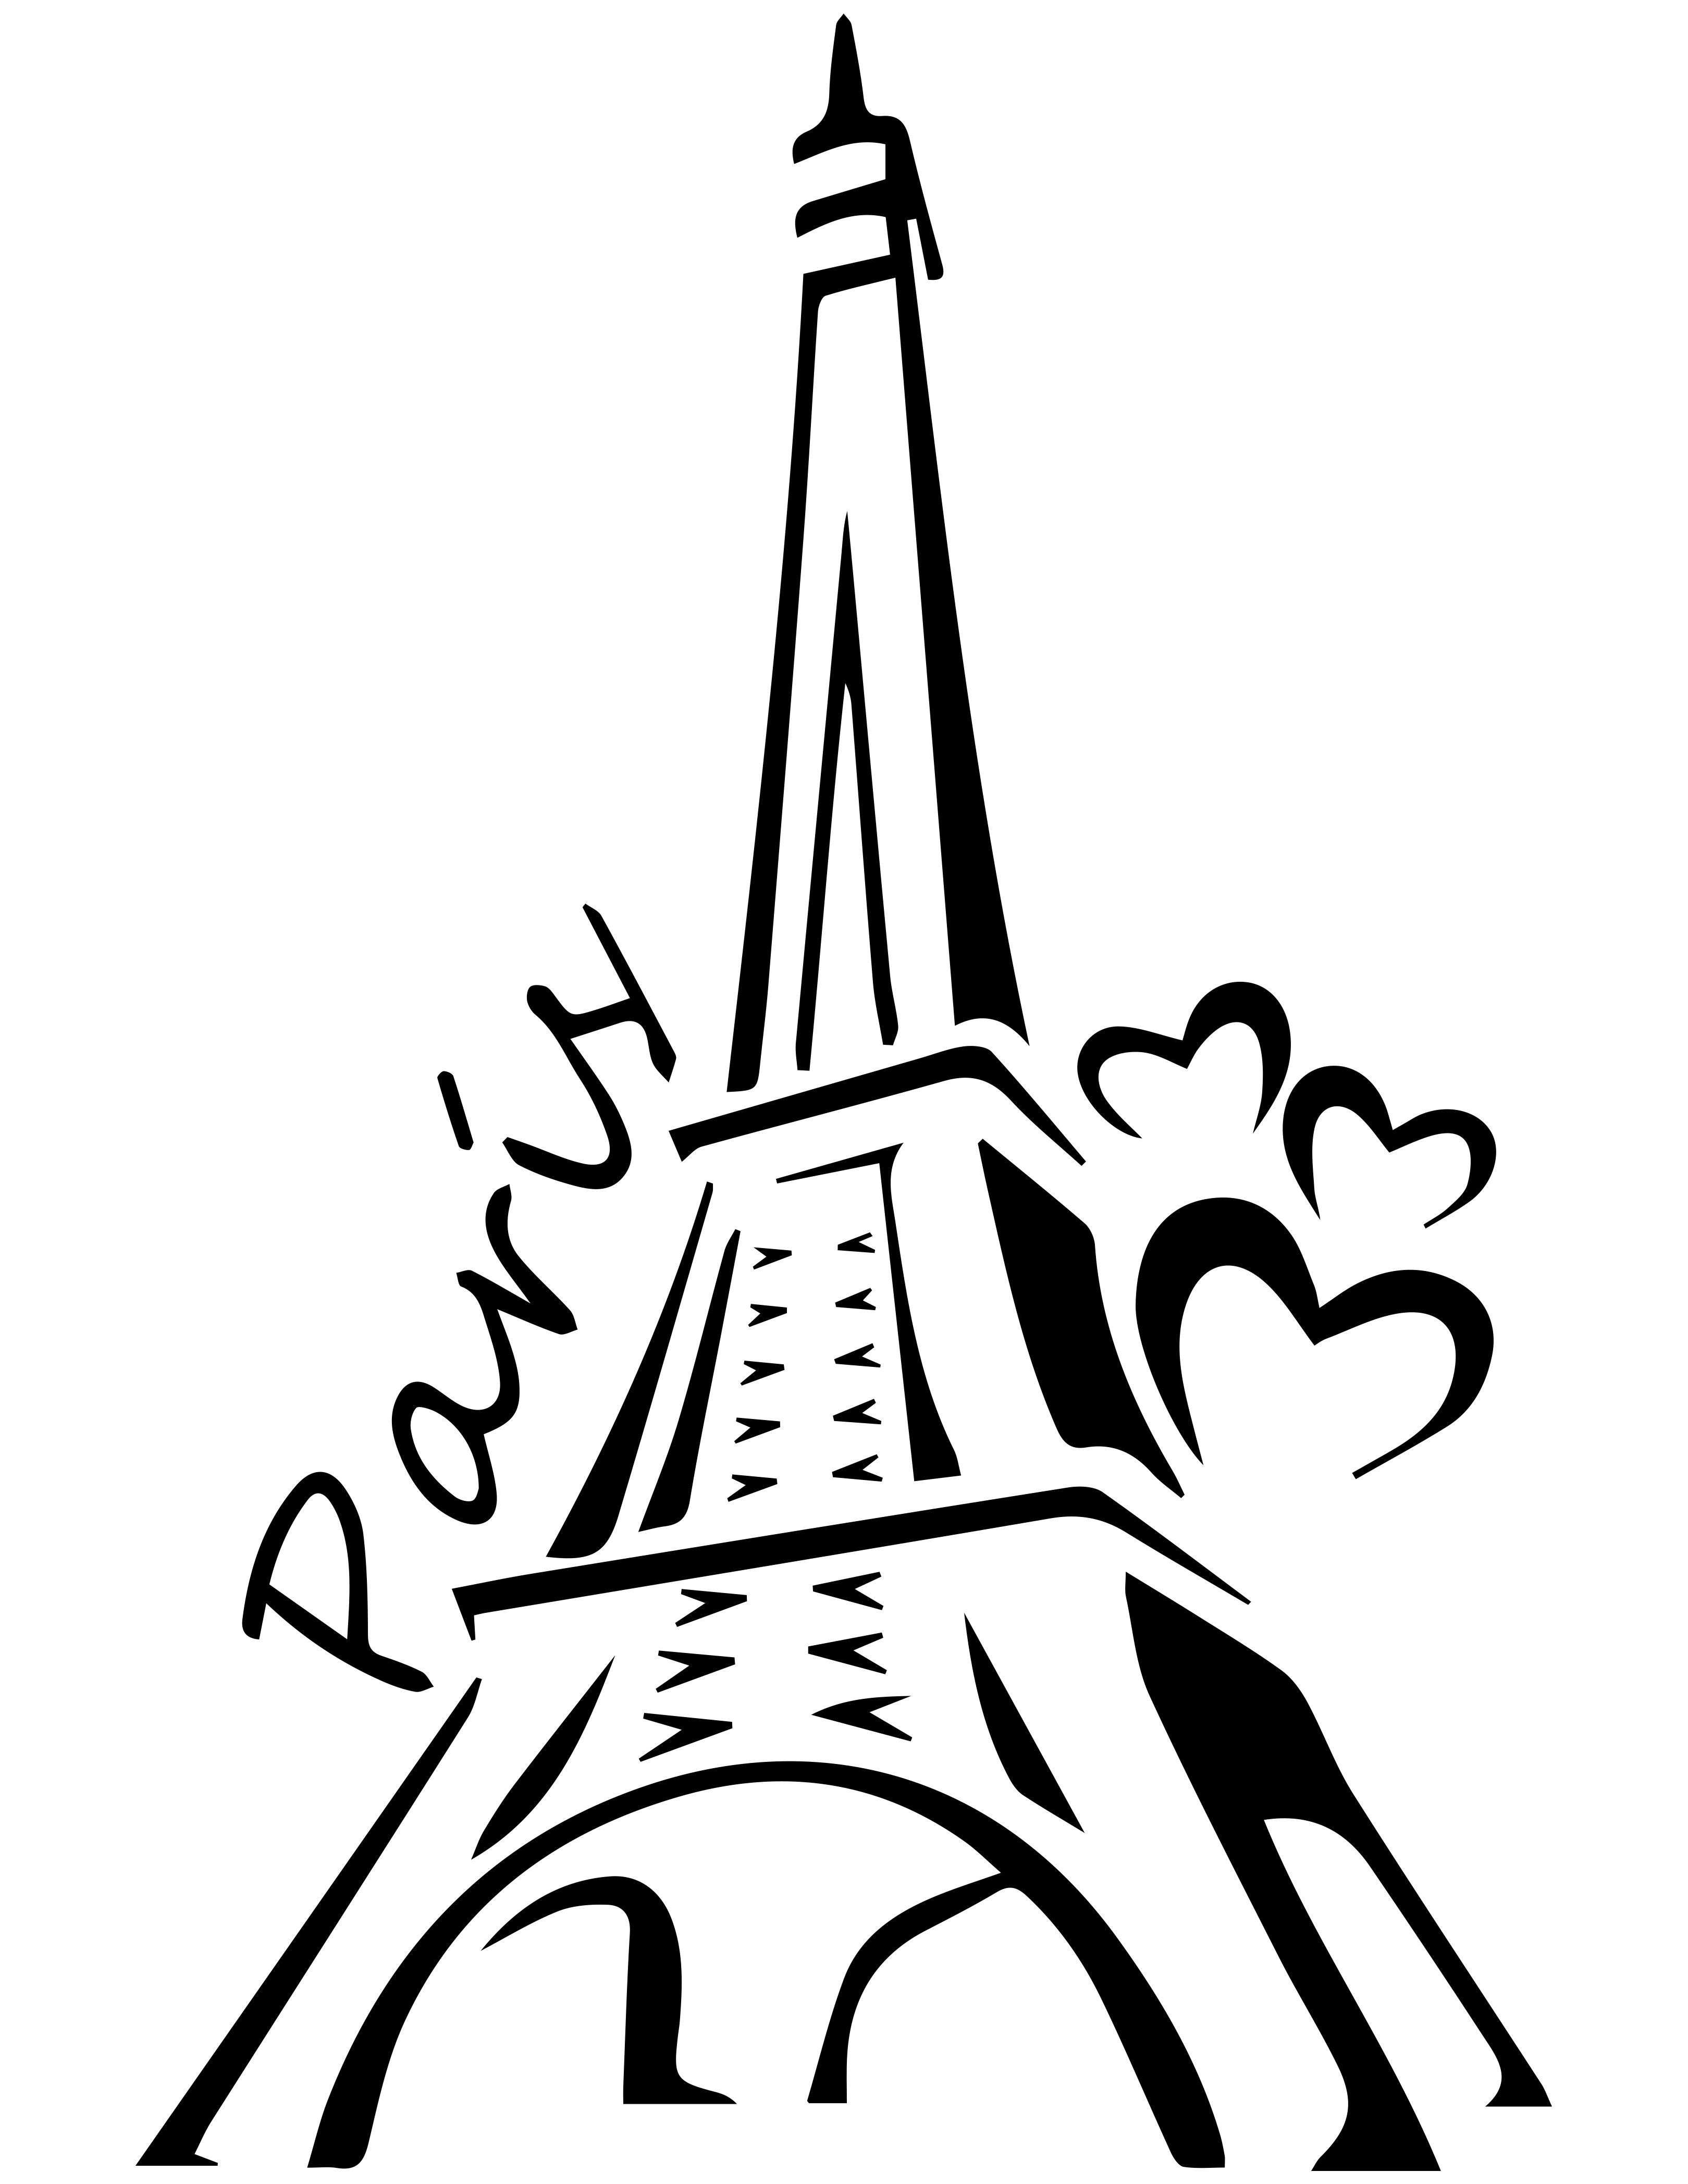 Torre eiffel dibujo clipart jpg Pin by Hilary Alford on Silhouette | Eiffel tower painting ... jpg